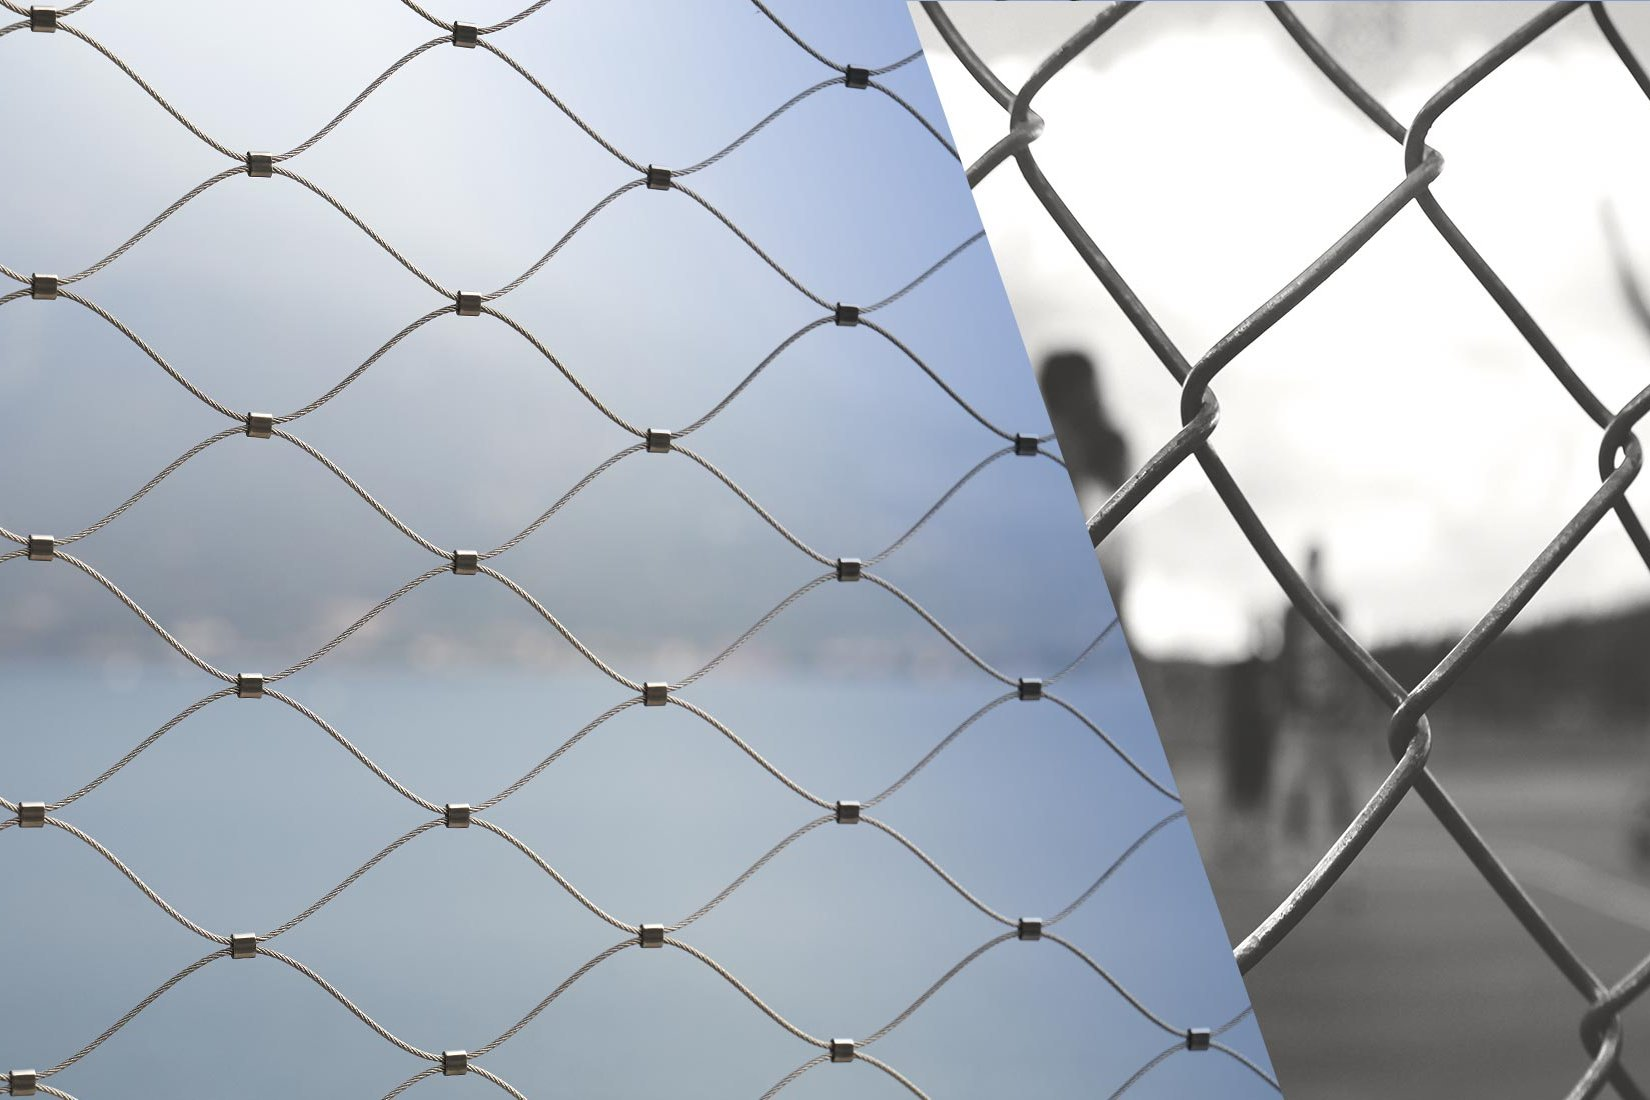 Image collage of the meshes of Webnet and of a chain link fence